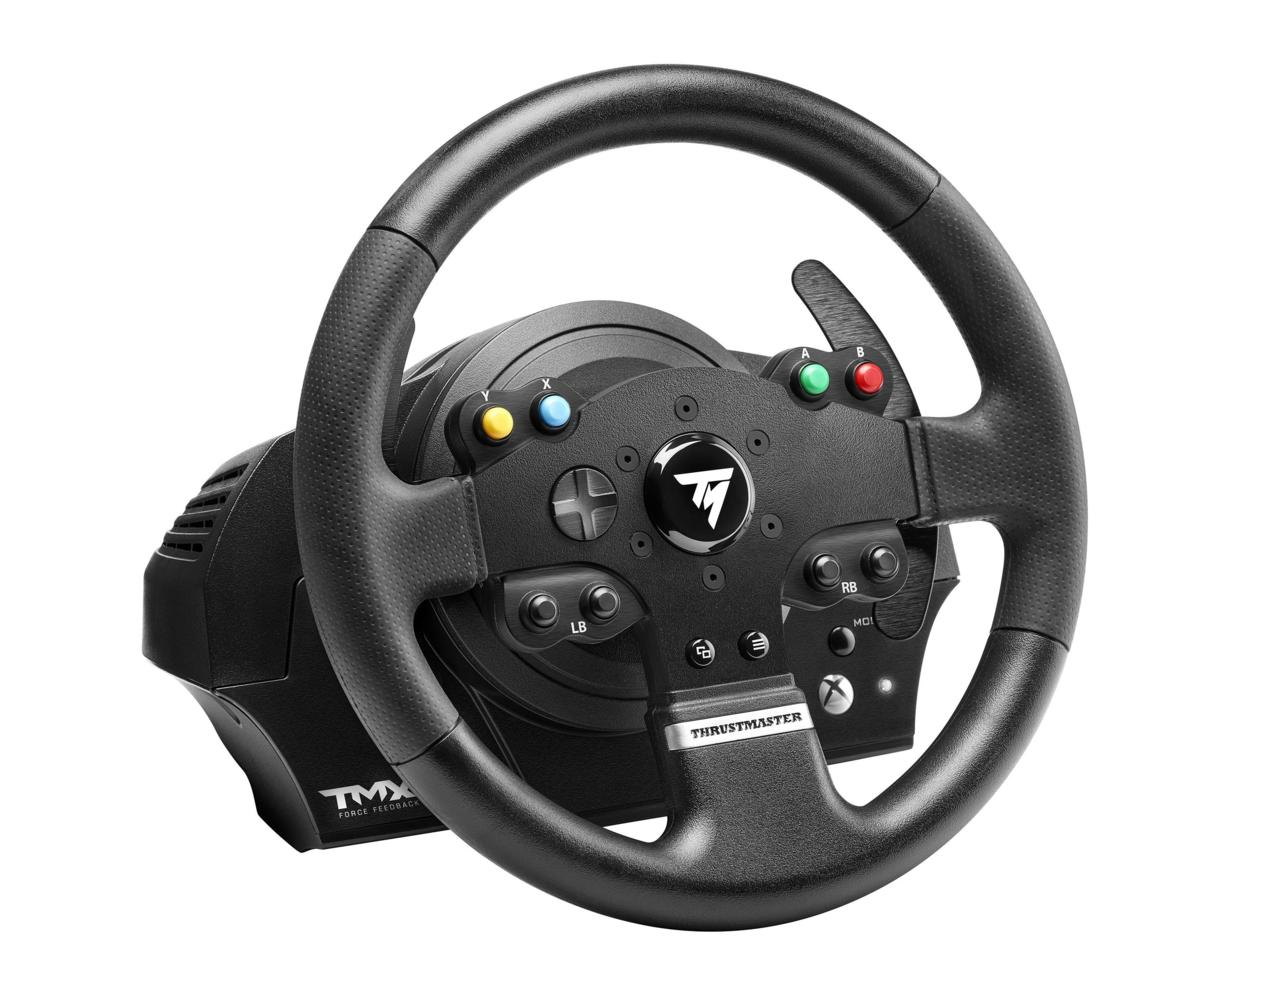 Thrustmaster TMX Force Feedback Racing Wheel for Xbox One/Windows - on sale for $126.37 at Amazon